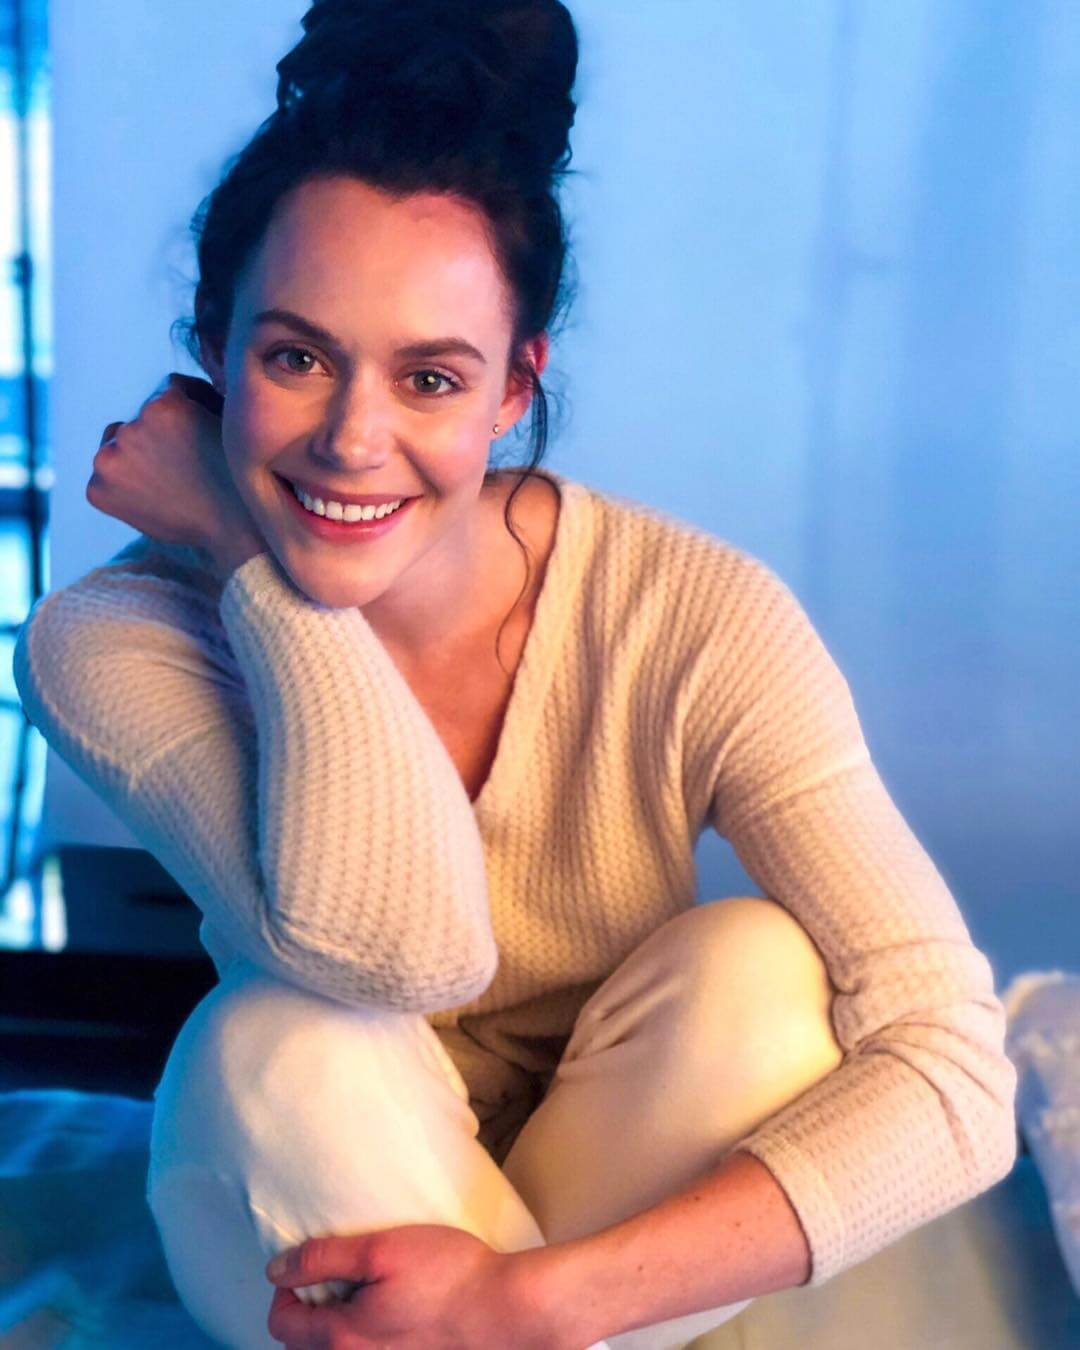 Tessa Virtue hot smile